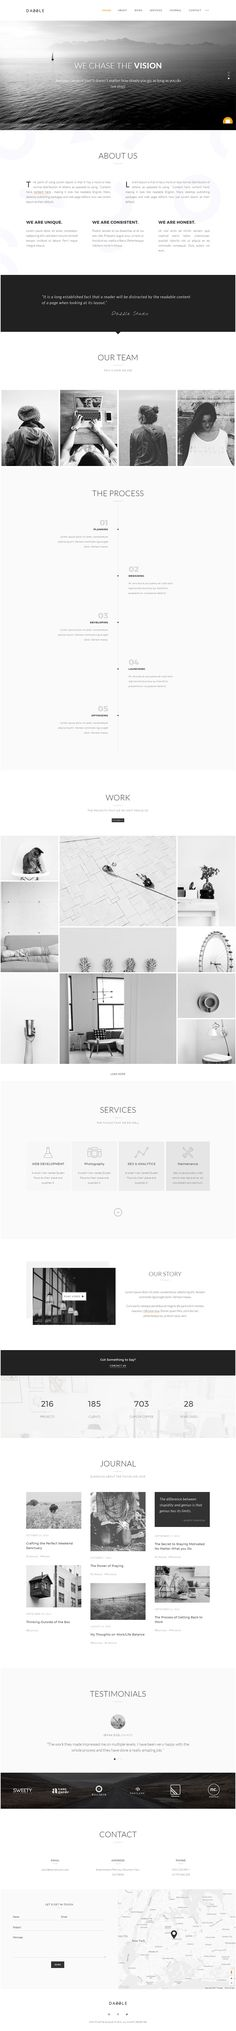 Dazzle is a modern and elegant WordPress Theme, one-page or multi-page solution, perfect for creative professionals, suitable for any type of business, built for any needs. Every single detail is carefully designed and crafted, in order to create a seamless and wonderful user experience across all devices.